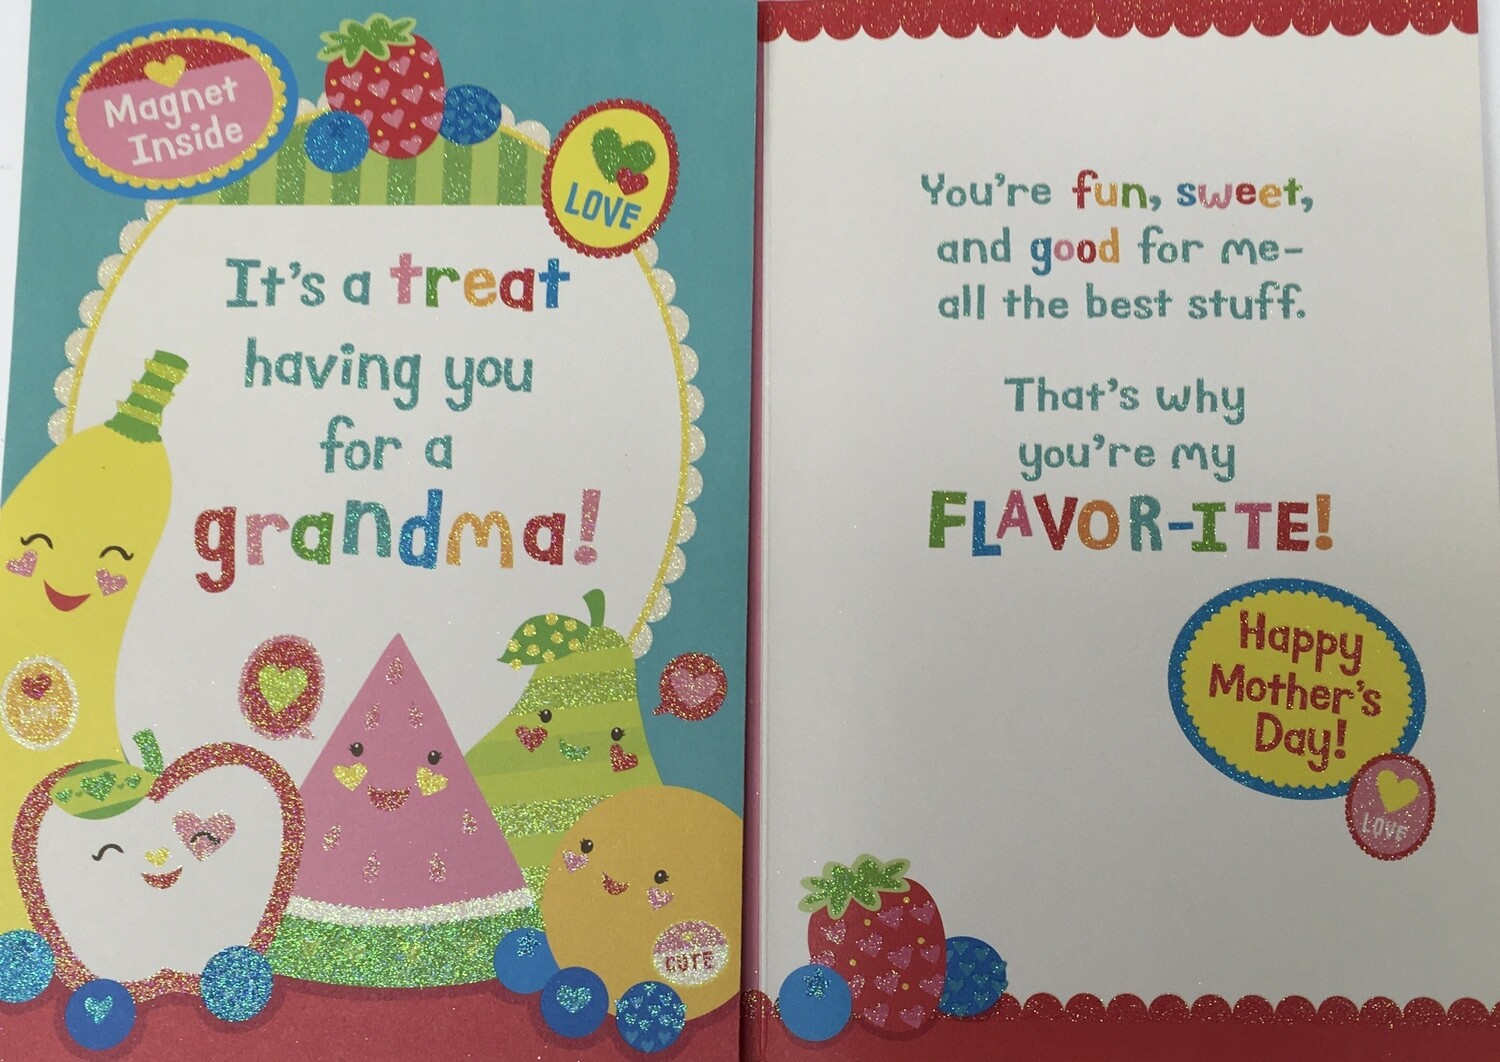 Grandma from Kid for Mom's Day.